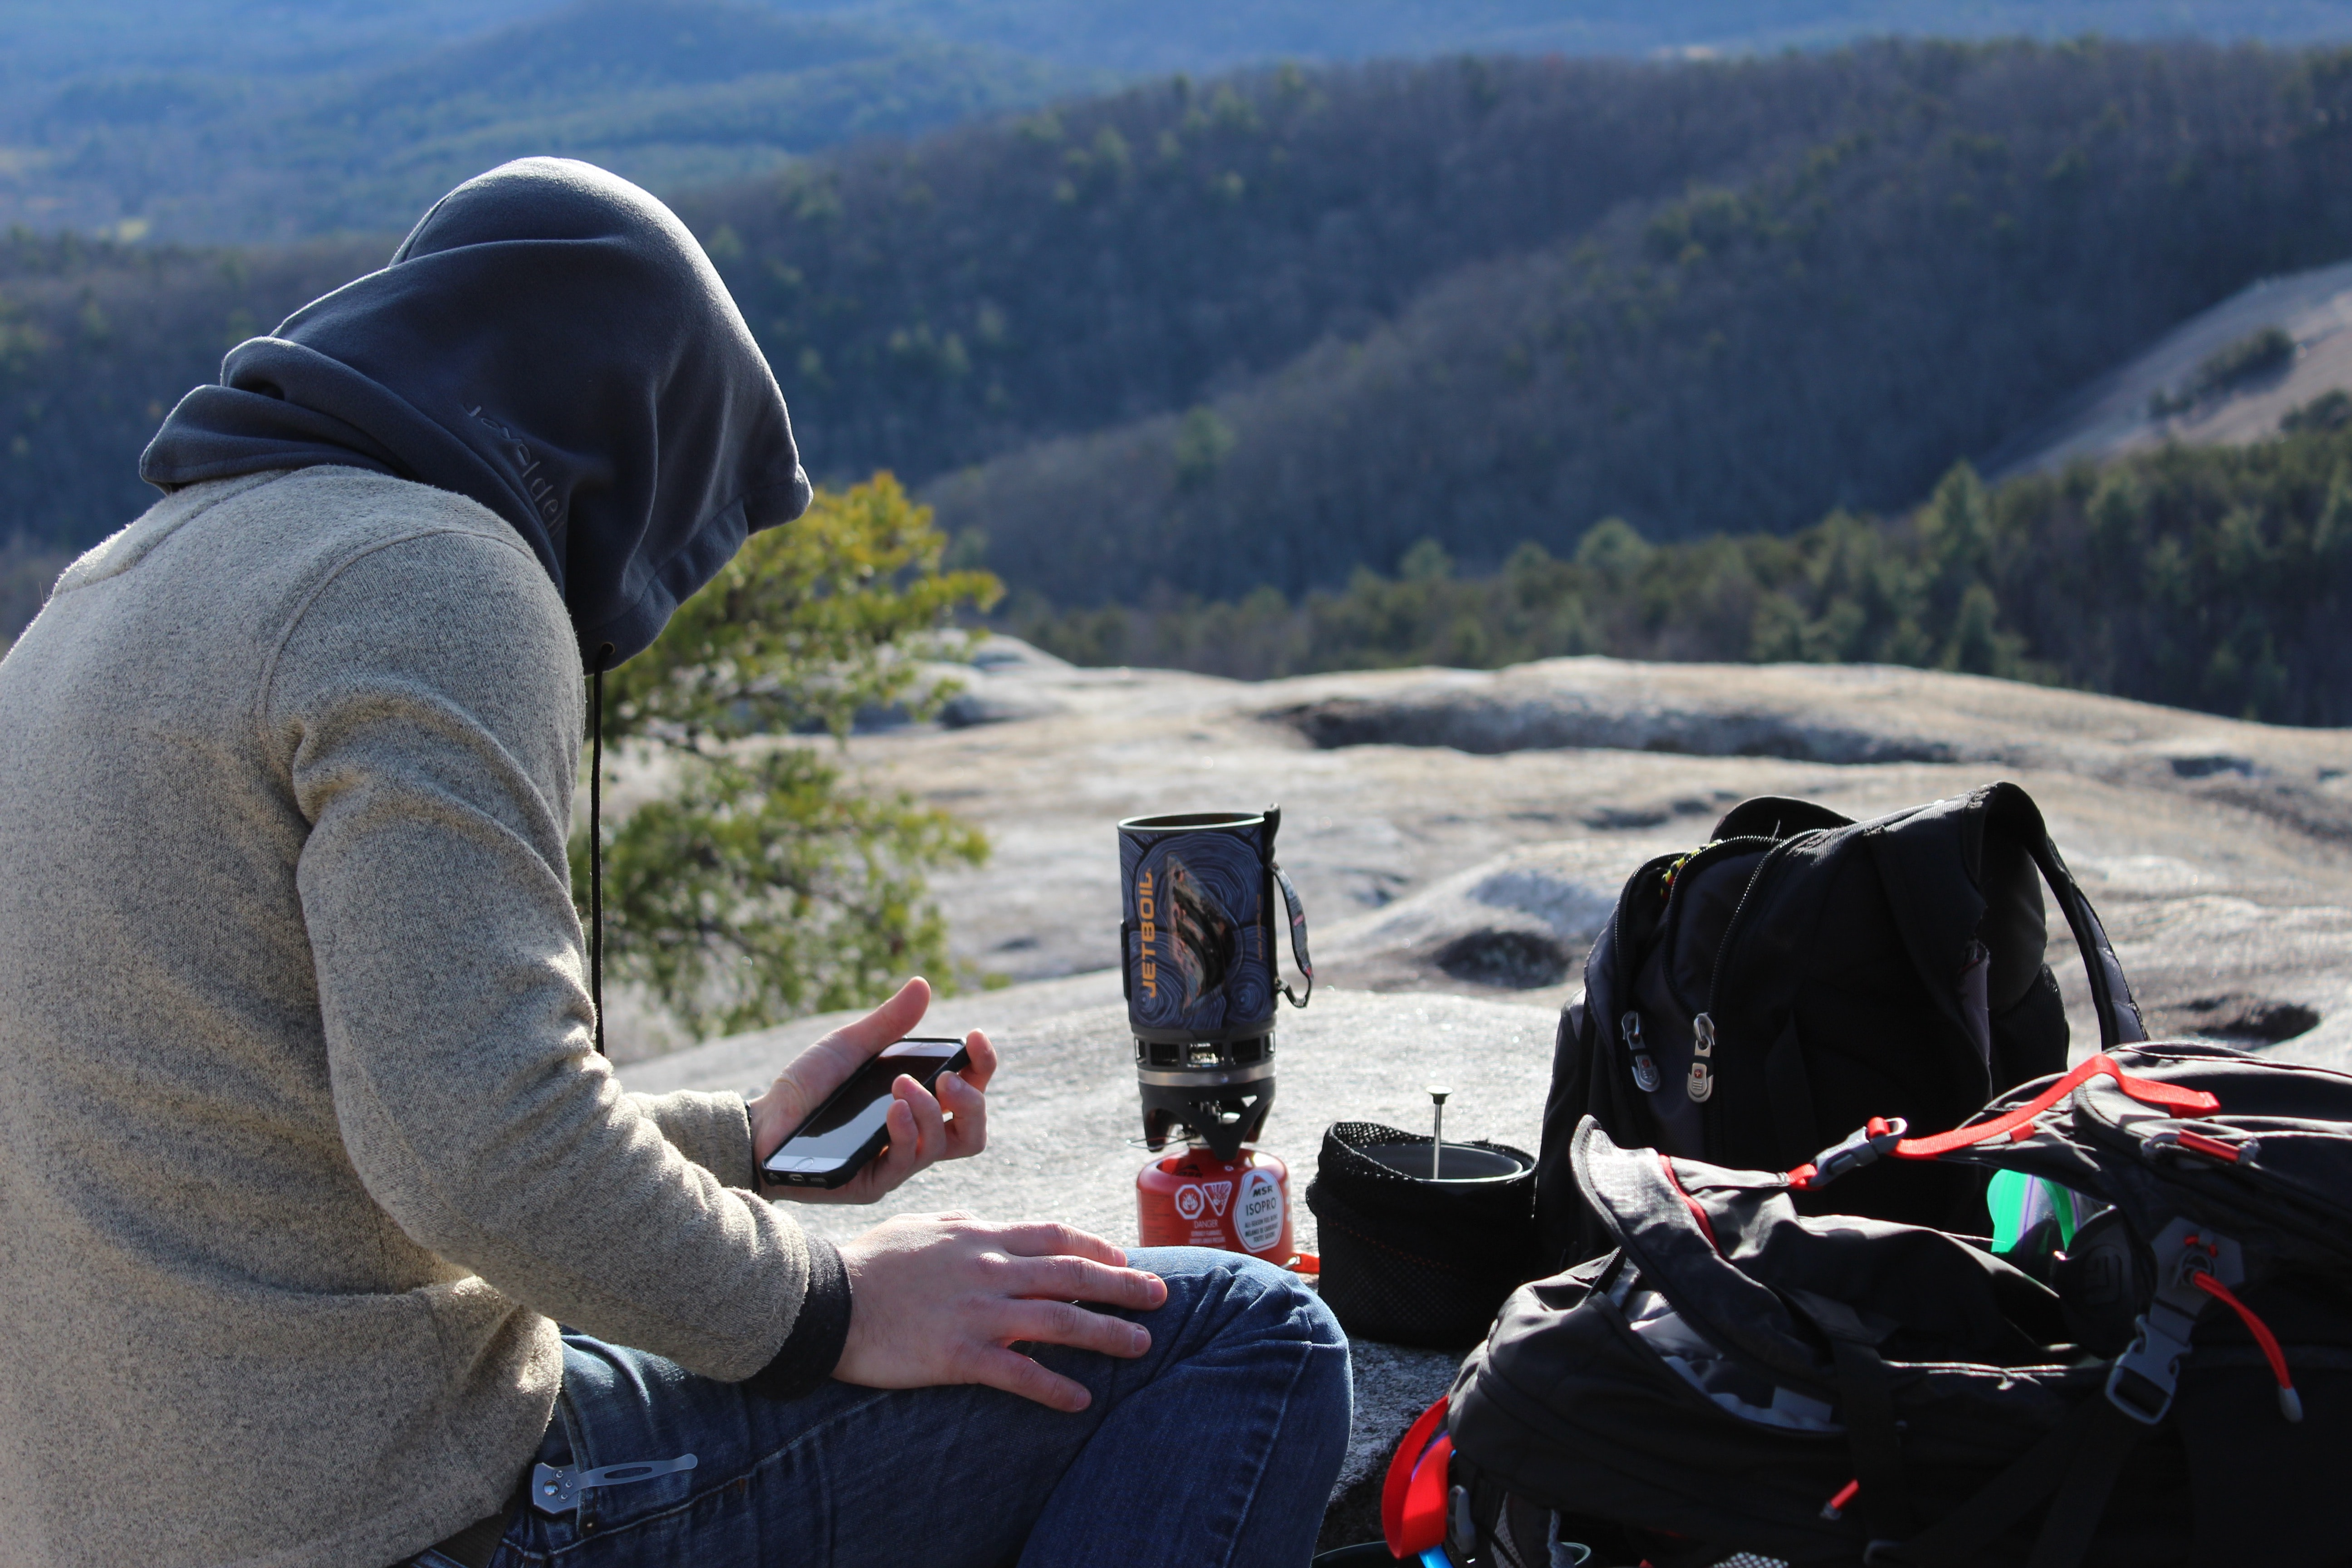 A hooded man with a phone in his hand sitting next to hiking equipment on a large rock